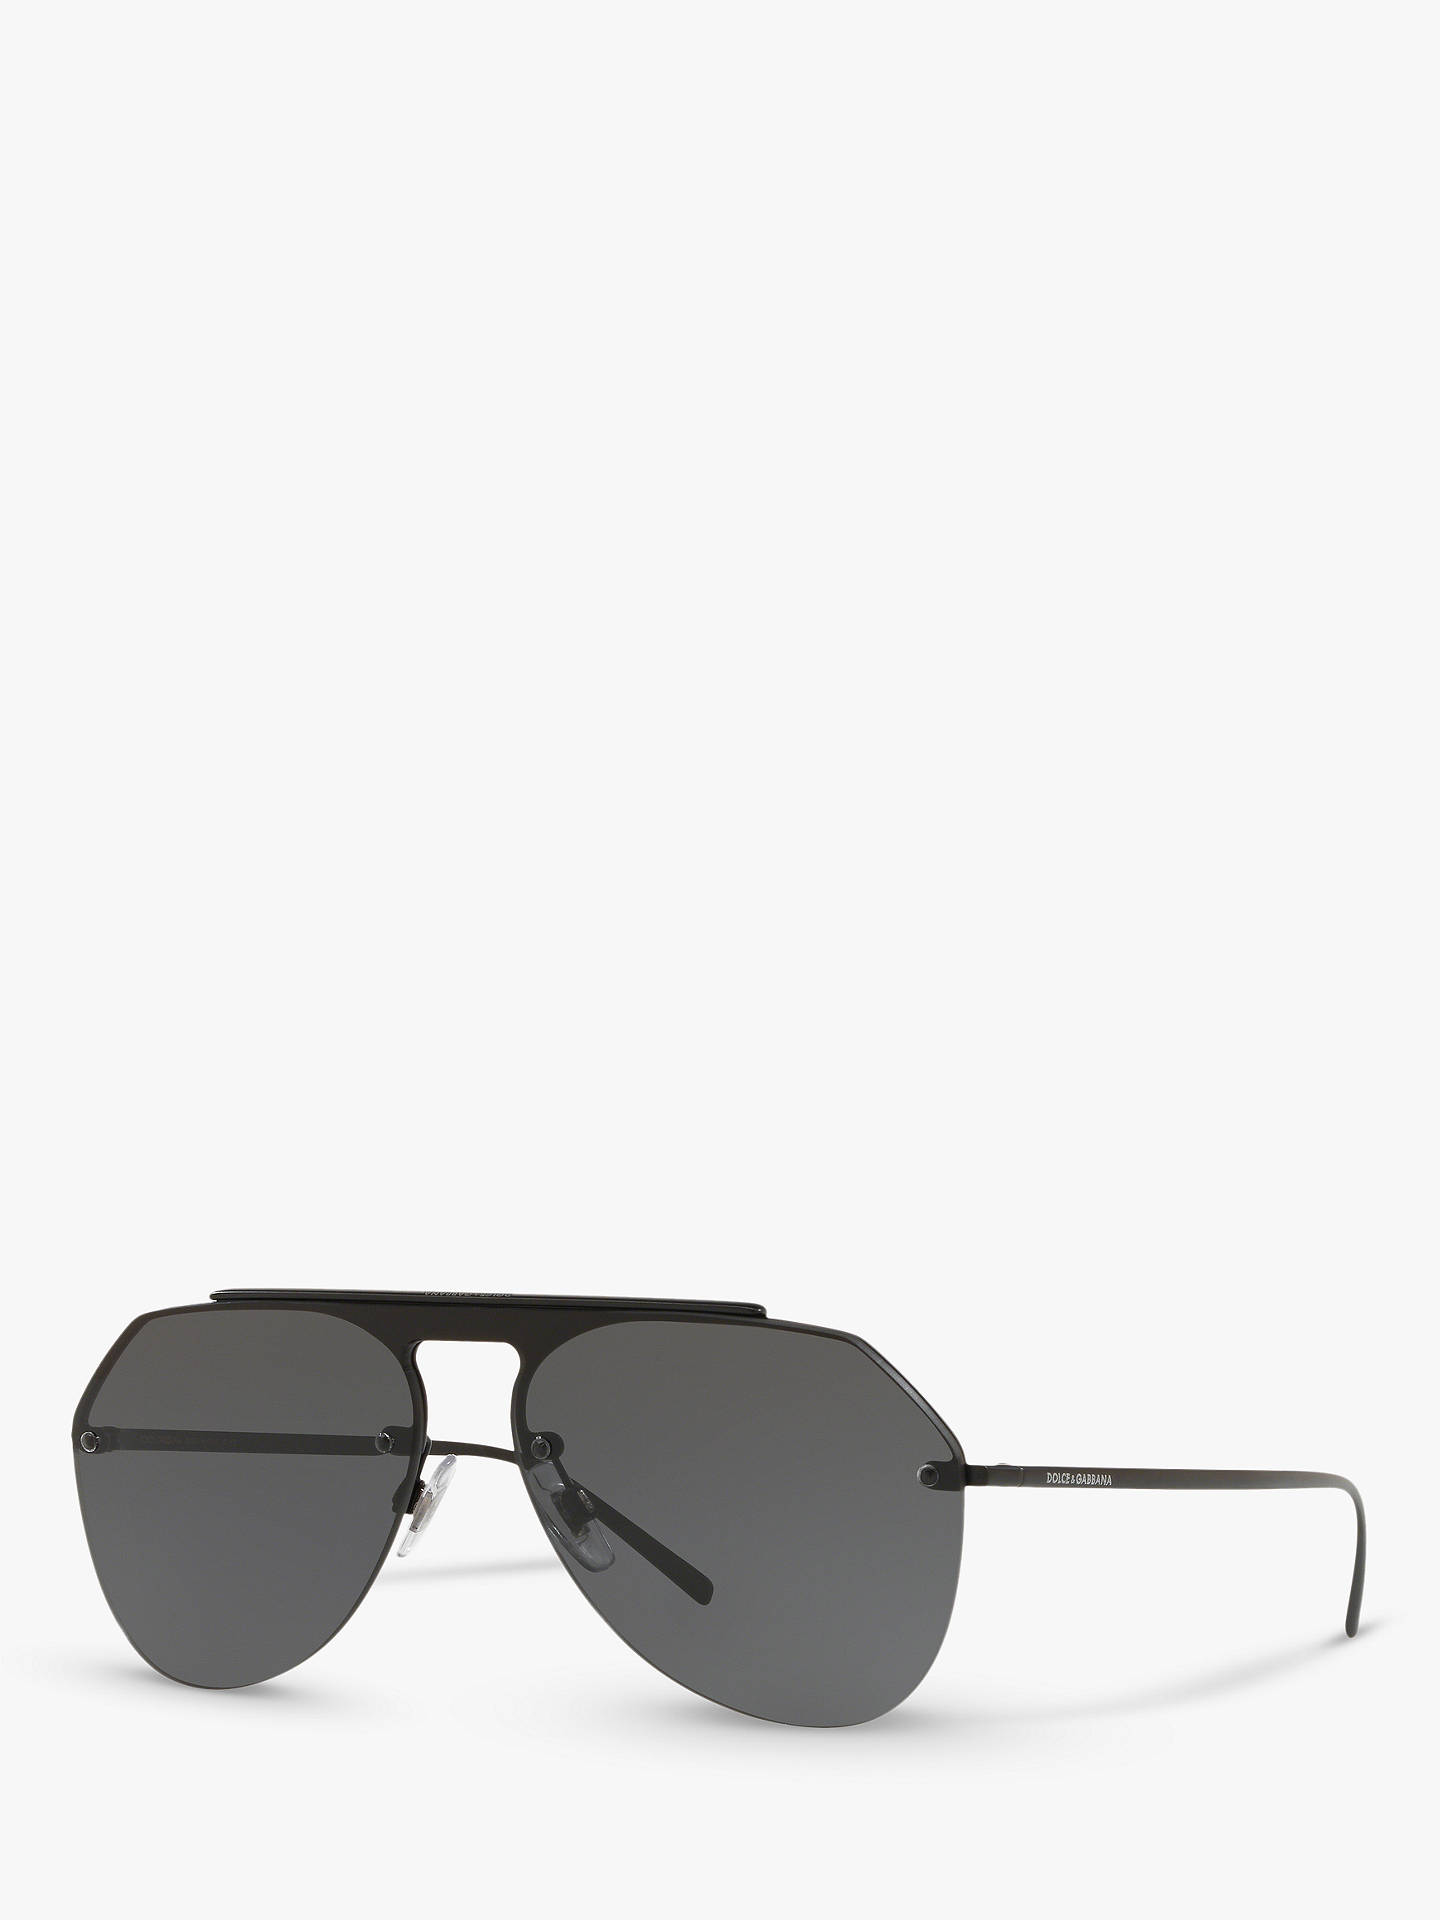 507d9317ced0 Dolce   Gabbana DG2213 Men s Aviator Sunglasses at John Lewis   Partners